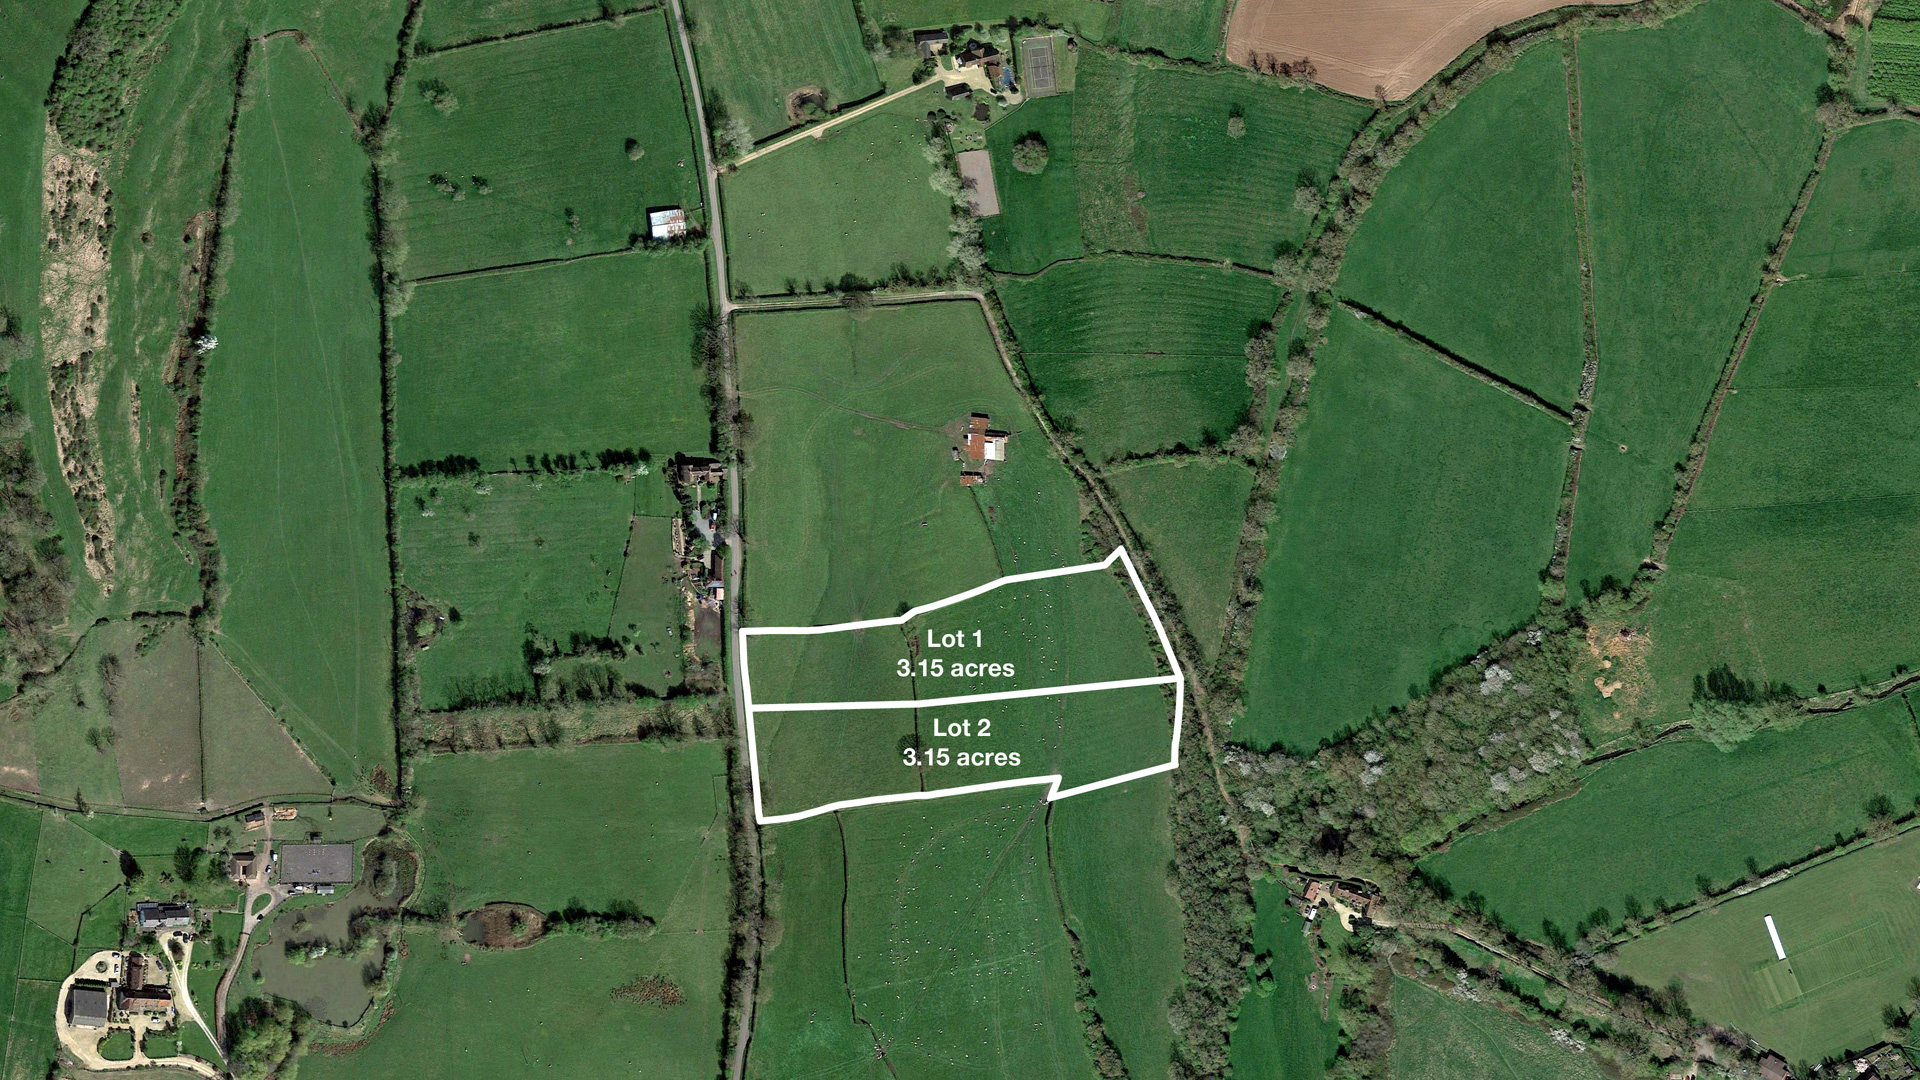 Land for sale at Berrowhill View in Feckenham, Redditch